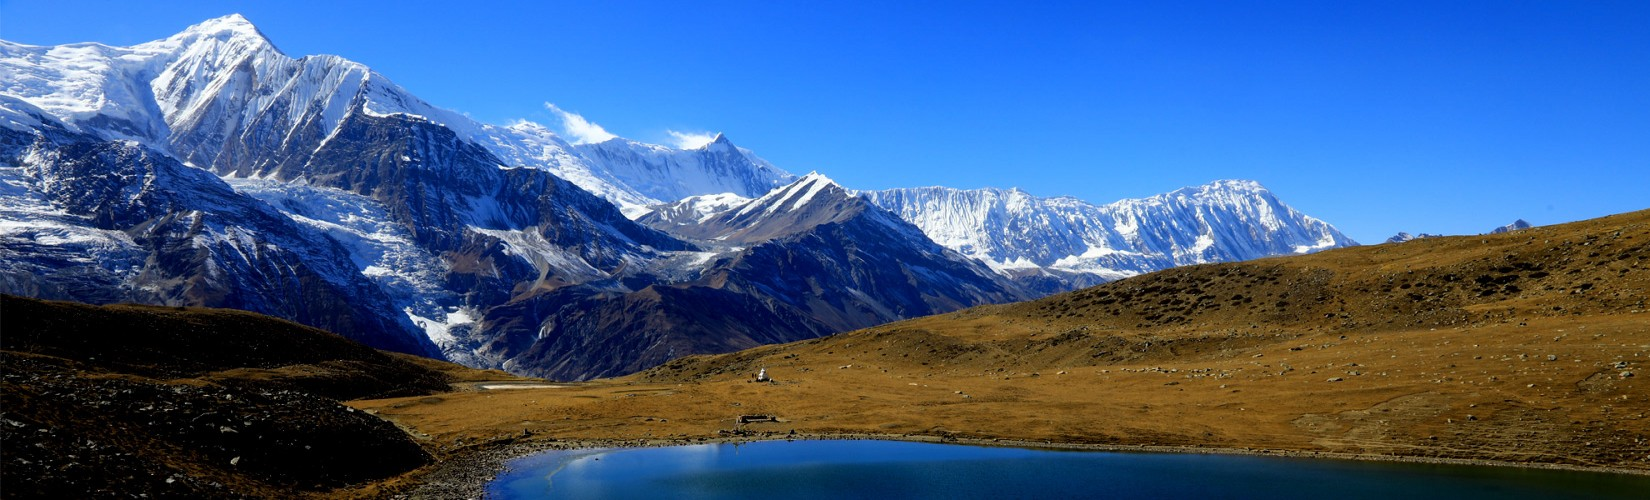 Annapurna Himalayan Range from Ice Lake